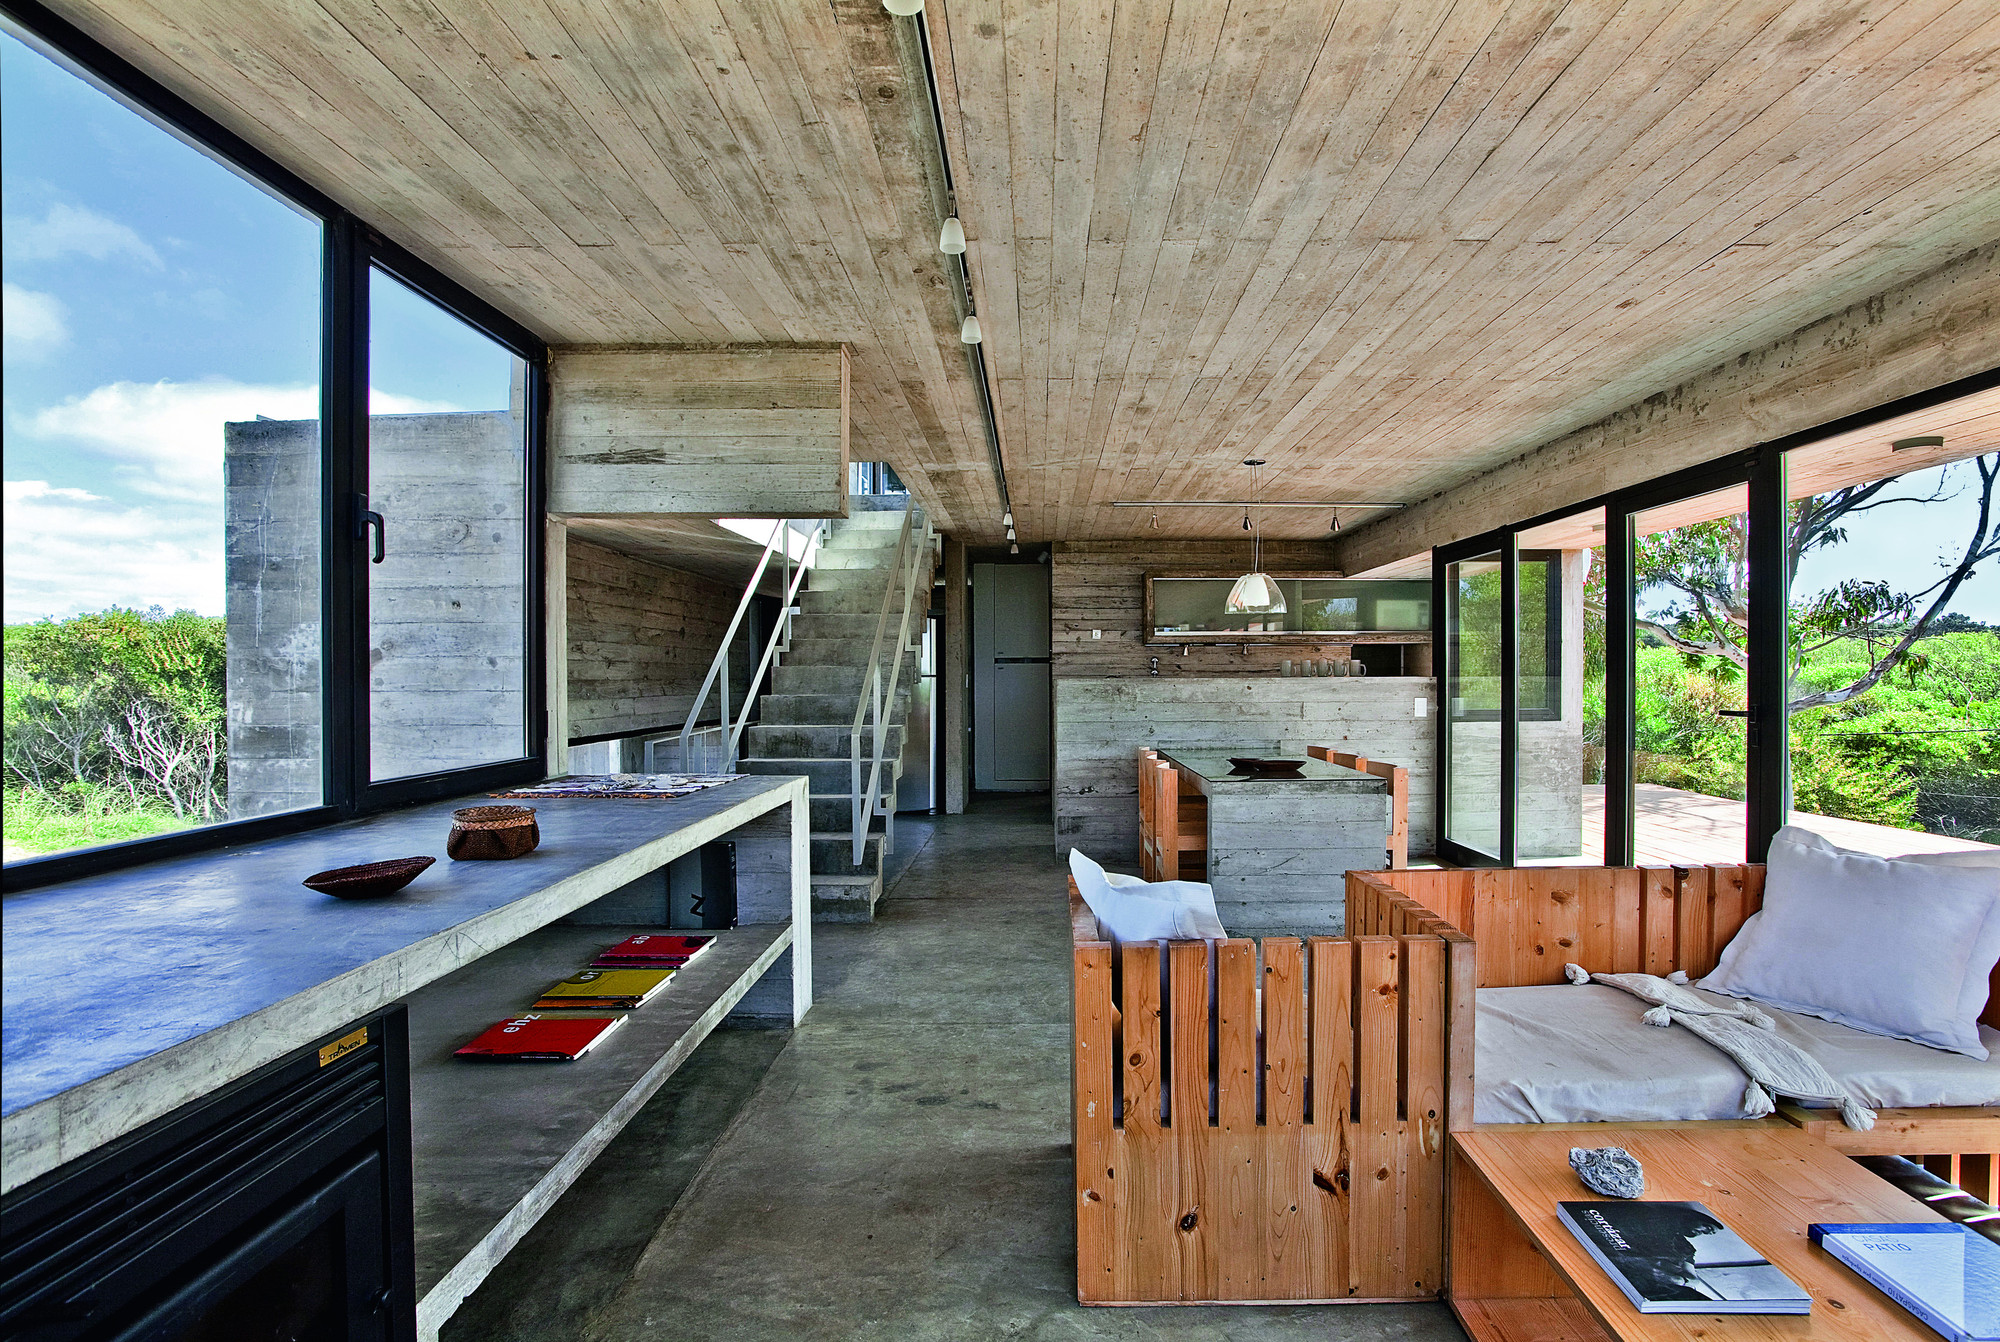 Holzvertäfelung Shabby Gallery Of House On The Beach Bak Architects 19